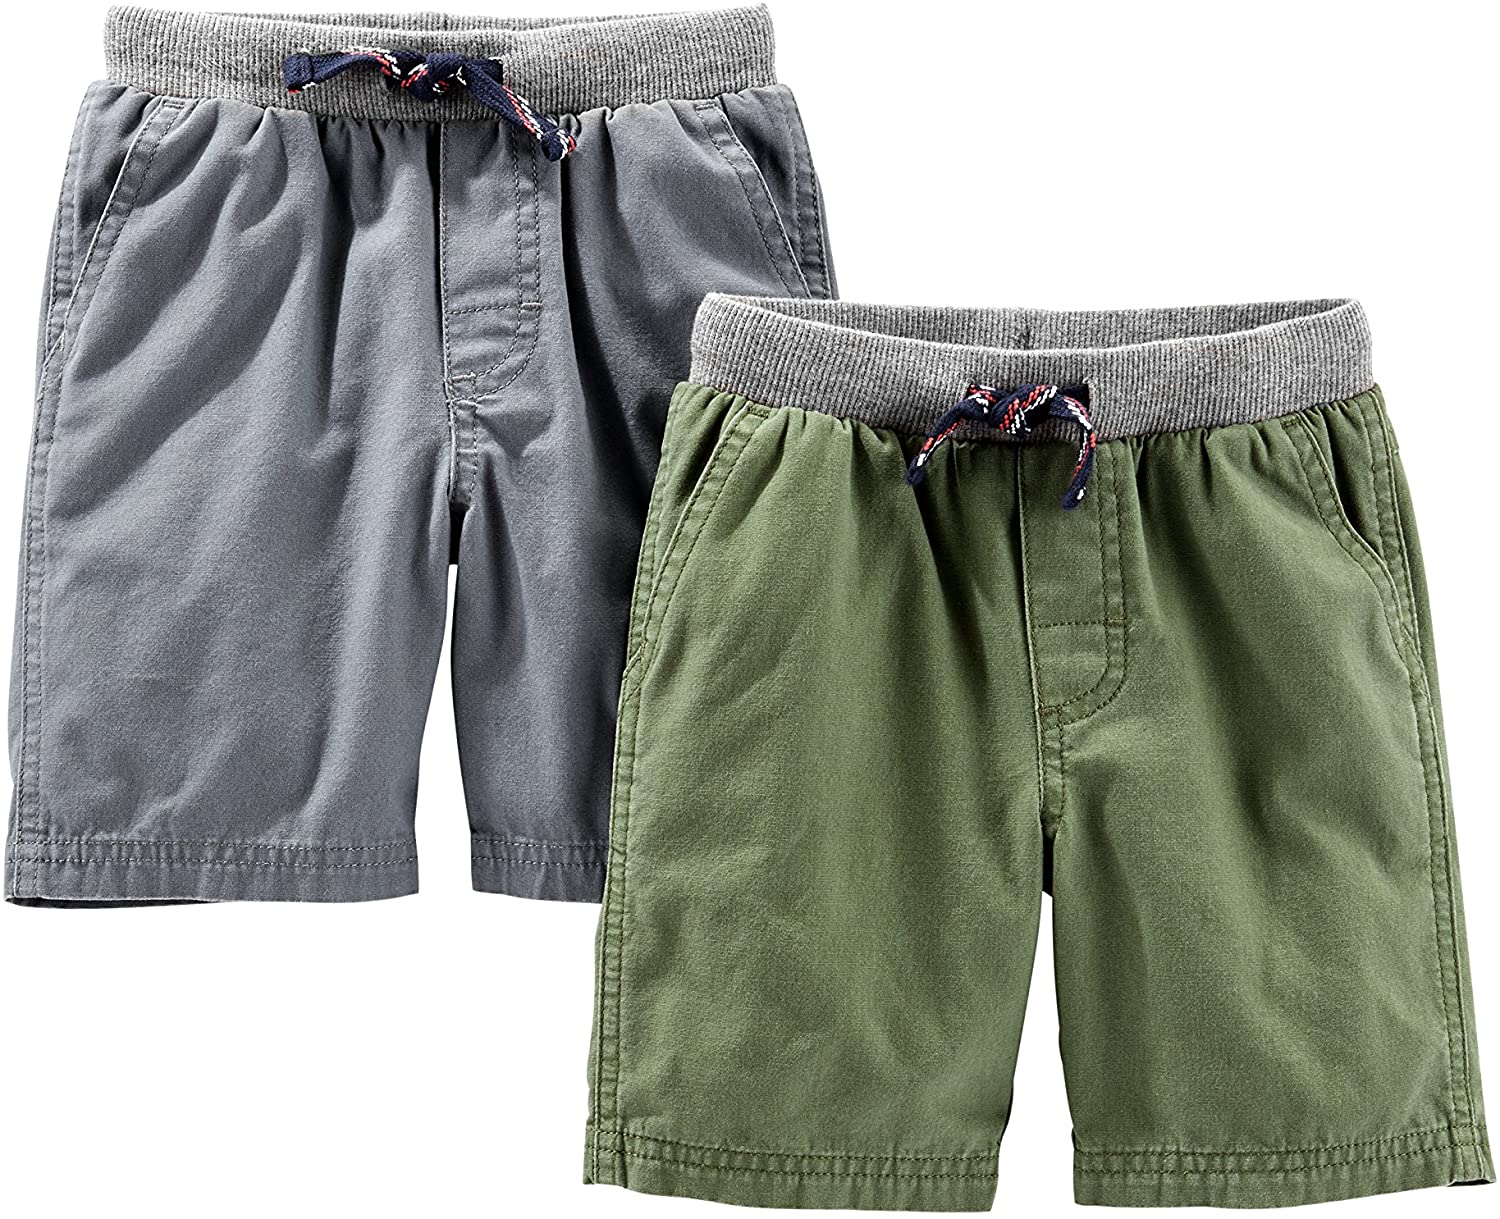 Simple Joys by Carters Toddler Boys 2-Pack Shorts